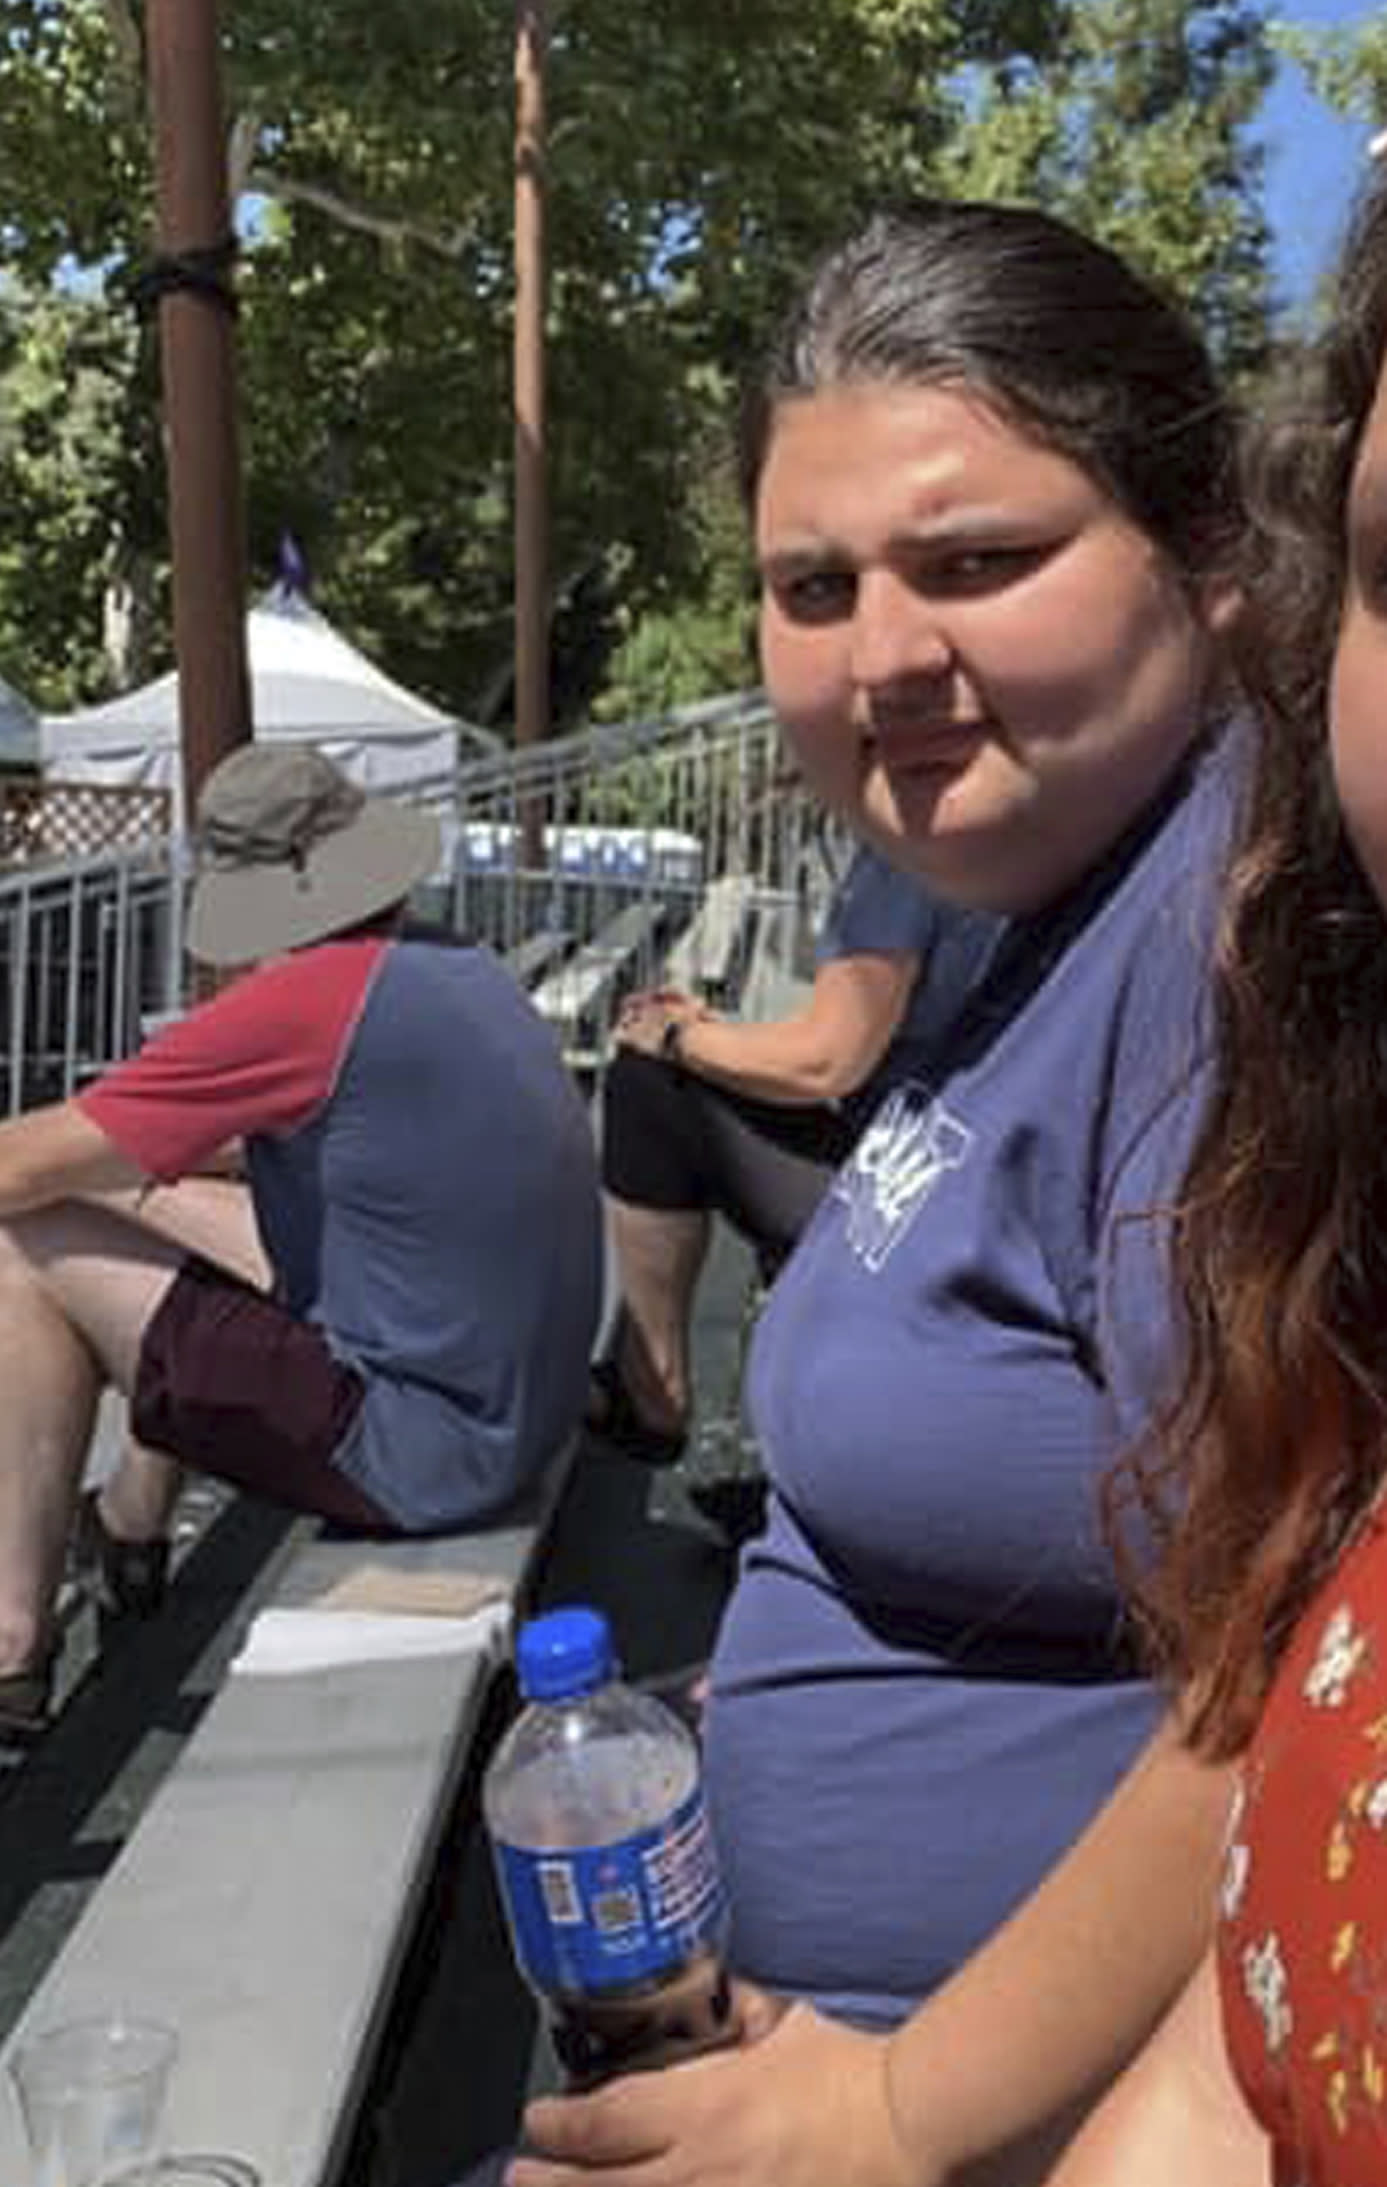 This undated photo provided by Maria G. Zalaya shows Keyla Salazar. She was one of three young people who died when a gunman opened fire at a popular California food festival Sunday. The 13-year-old from San Jose, Calif., died at the scene. (Maria G. Zalaya via AP)